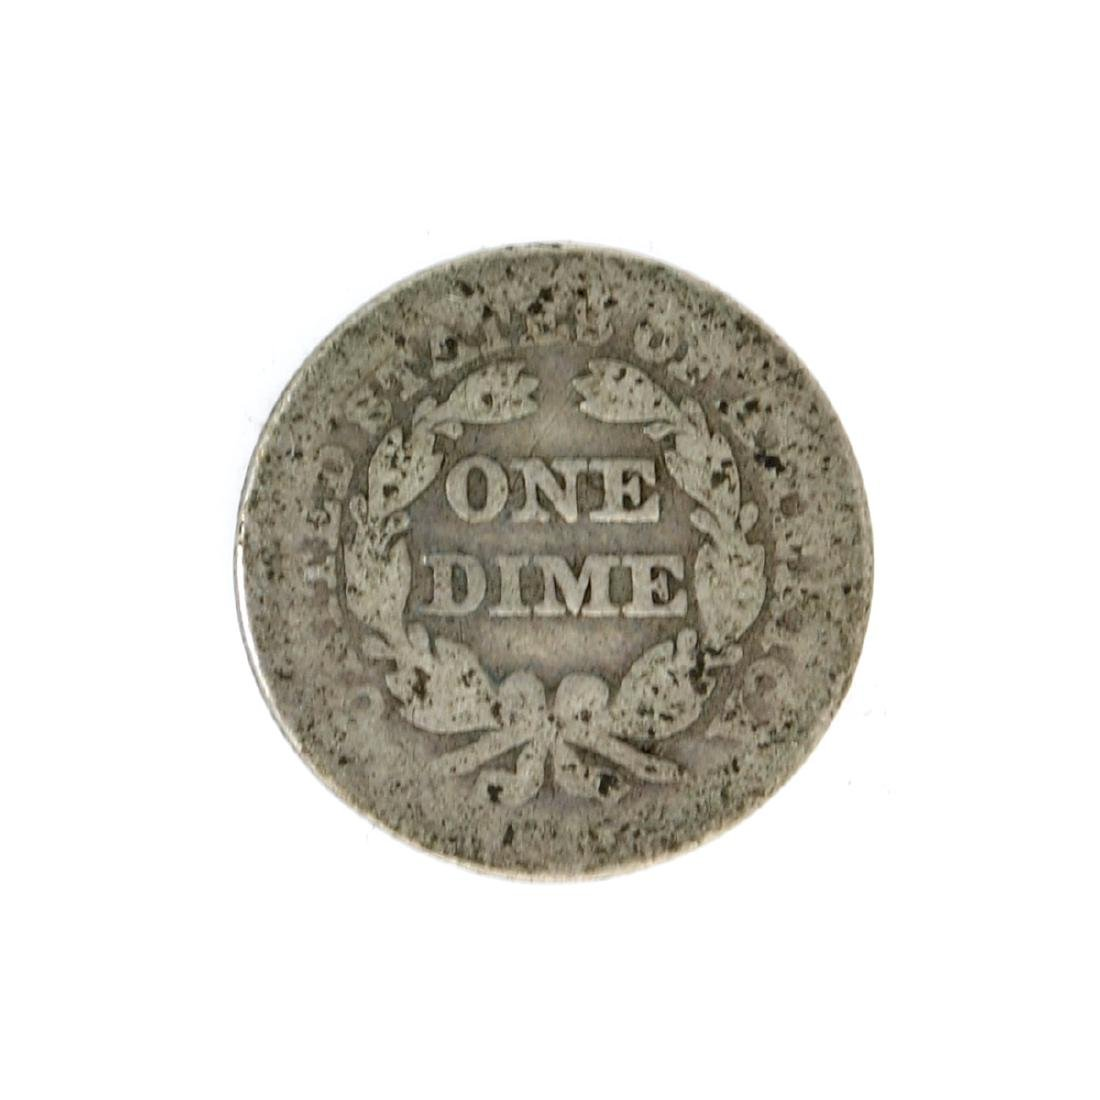 1845 Liberty Seated Dime Coin - 2